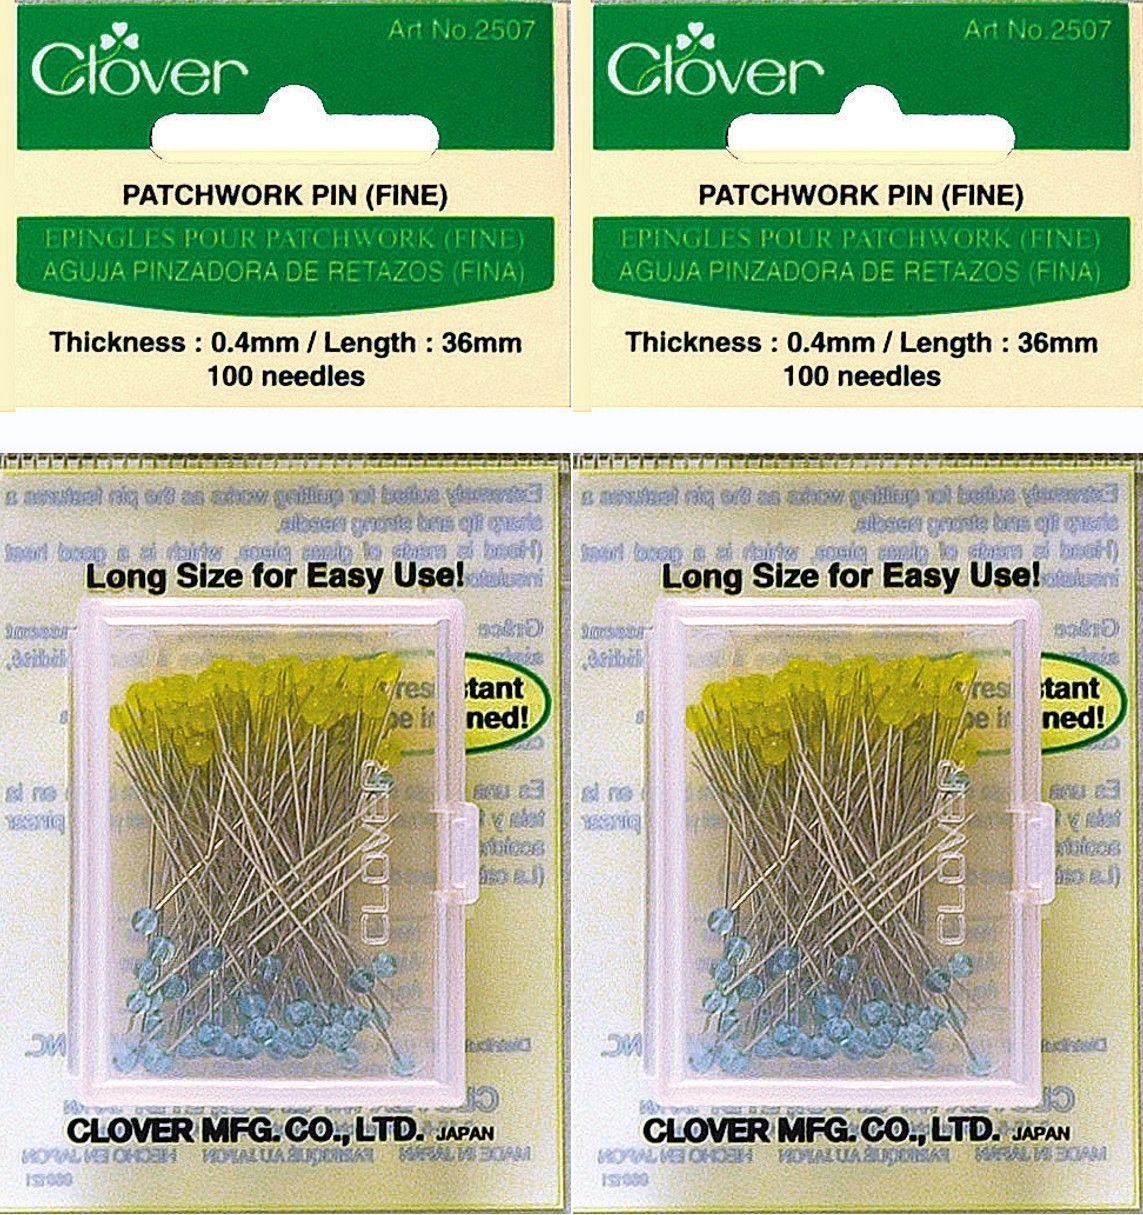 Two (2) Boxes Quantity 100 Clover Extra Fine Patchwork Pins ~ Article No. 2507 ~ 1.5'' Long .4mm Glass Head by CLOVER